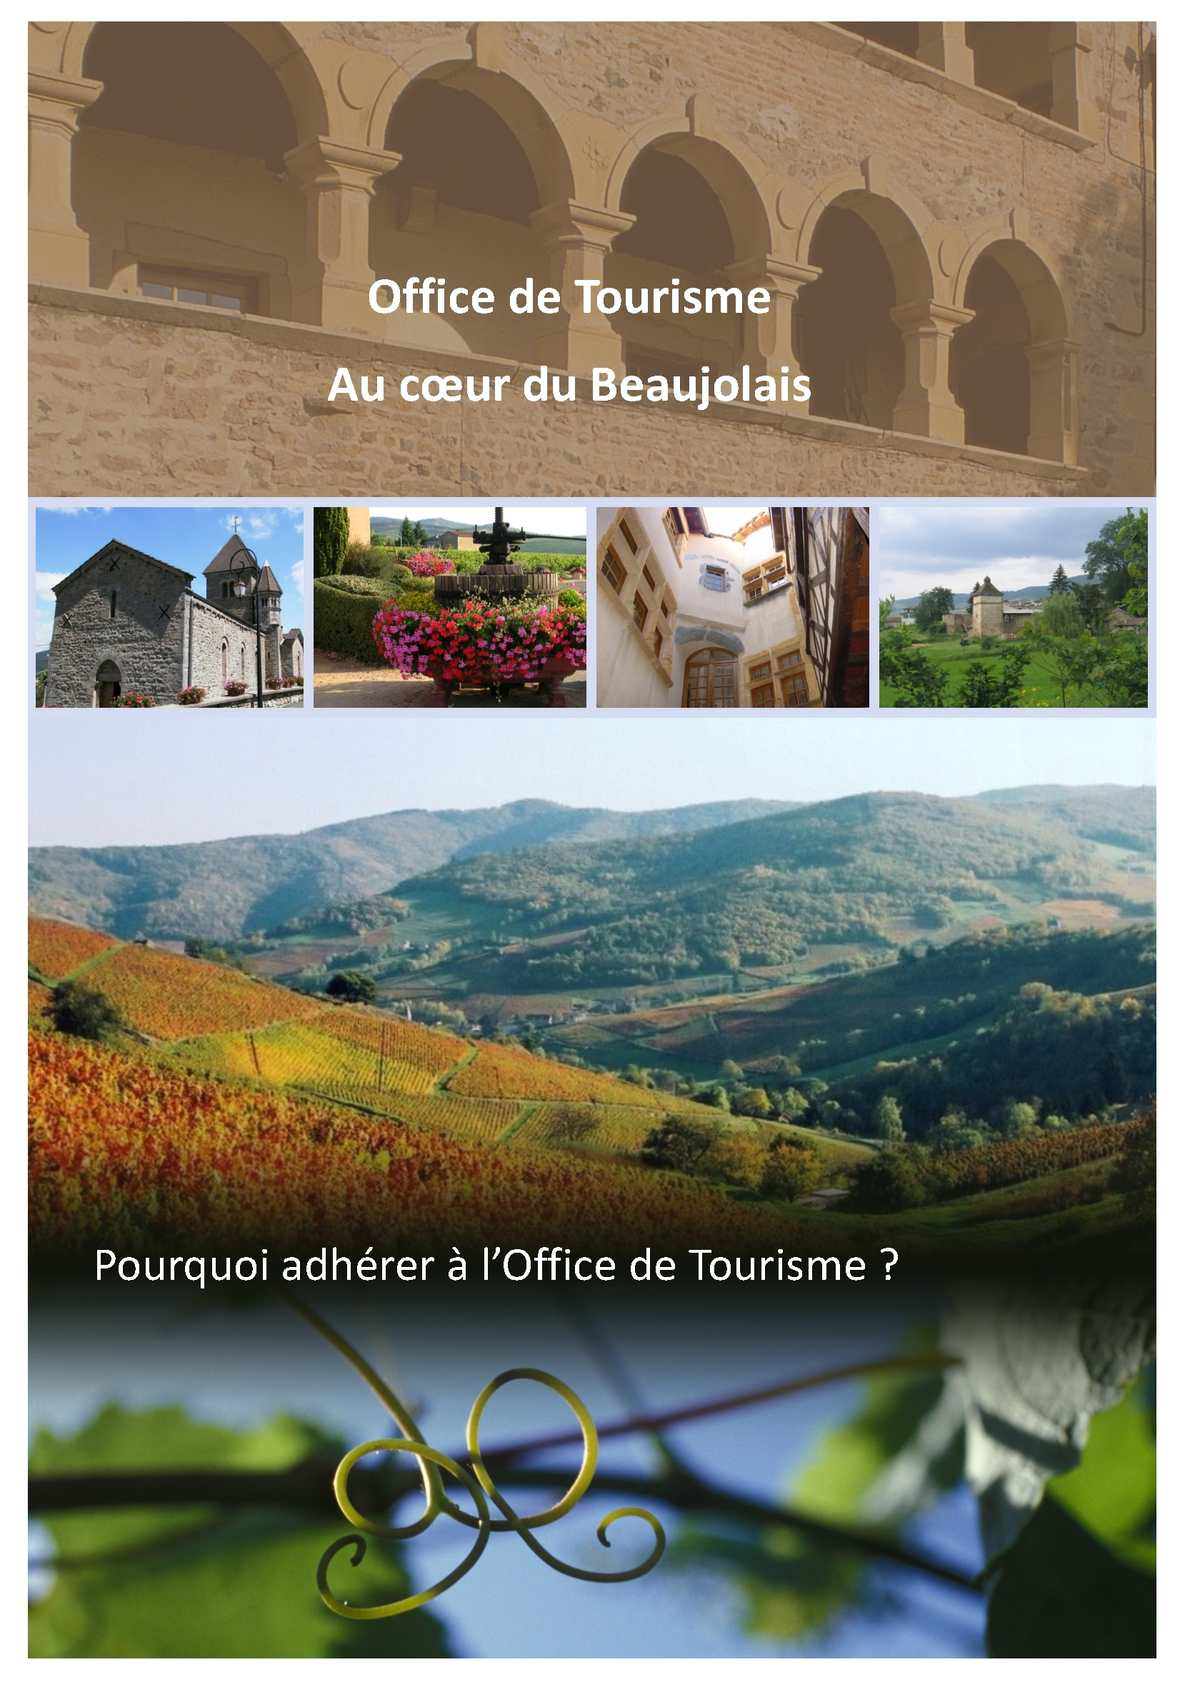 Calam o guide de l 39 adh rent office de tourisme au coeur du beaujolais - Office du tourisme des rousses ...